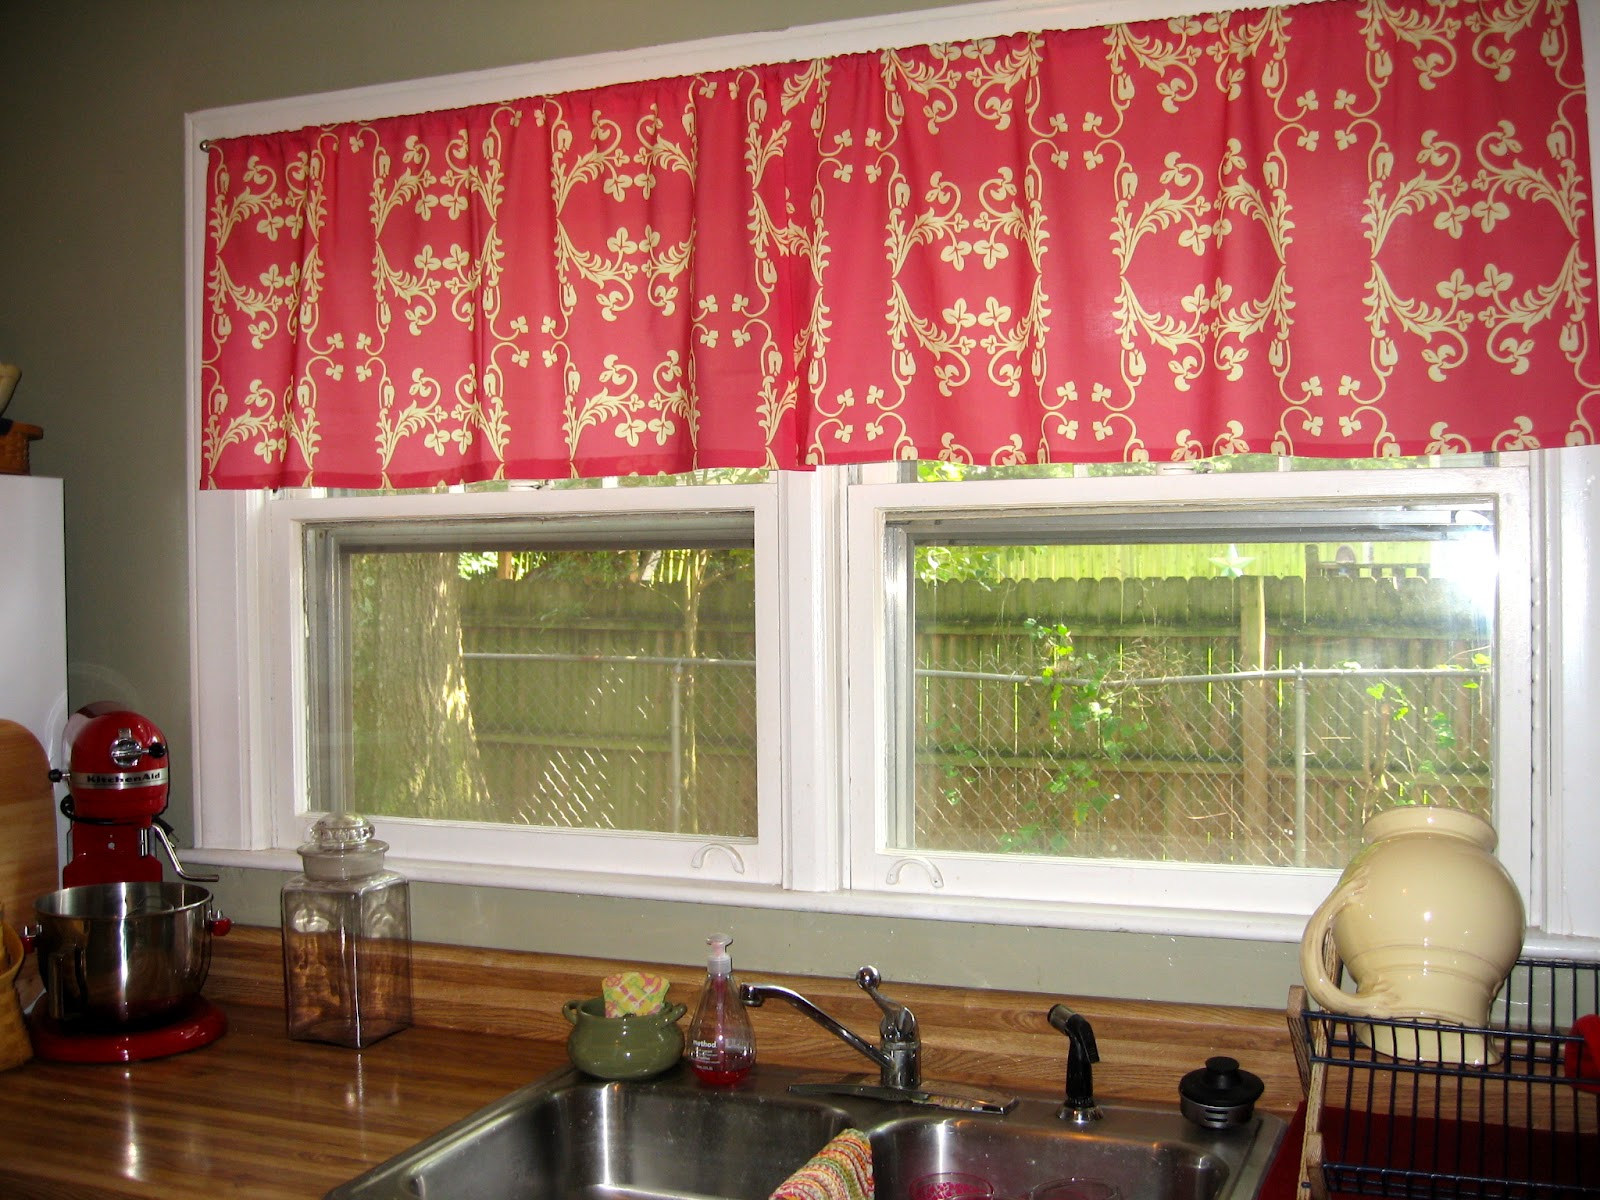 Pink Kitchen Window Curtains For Old Fashioned White Framed Windows Above Long Counter